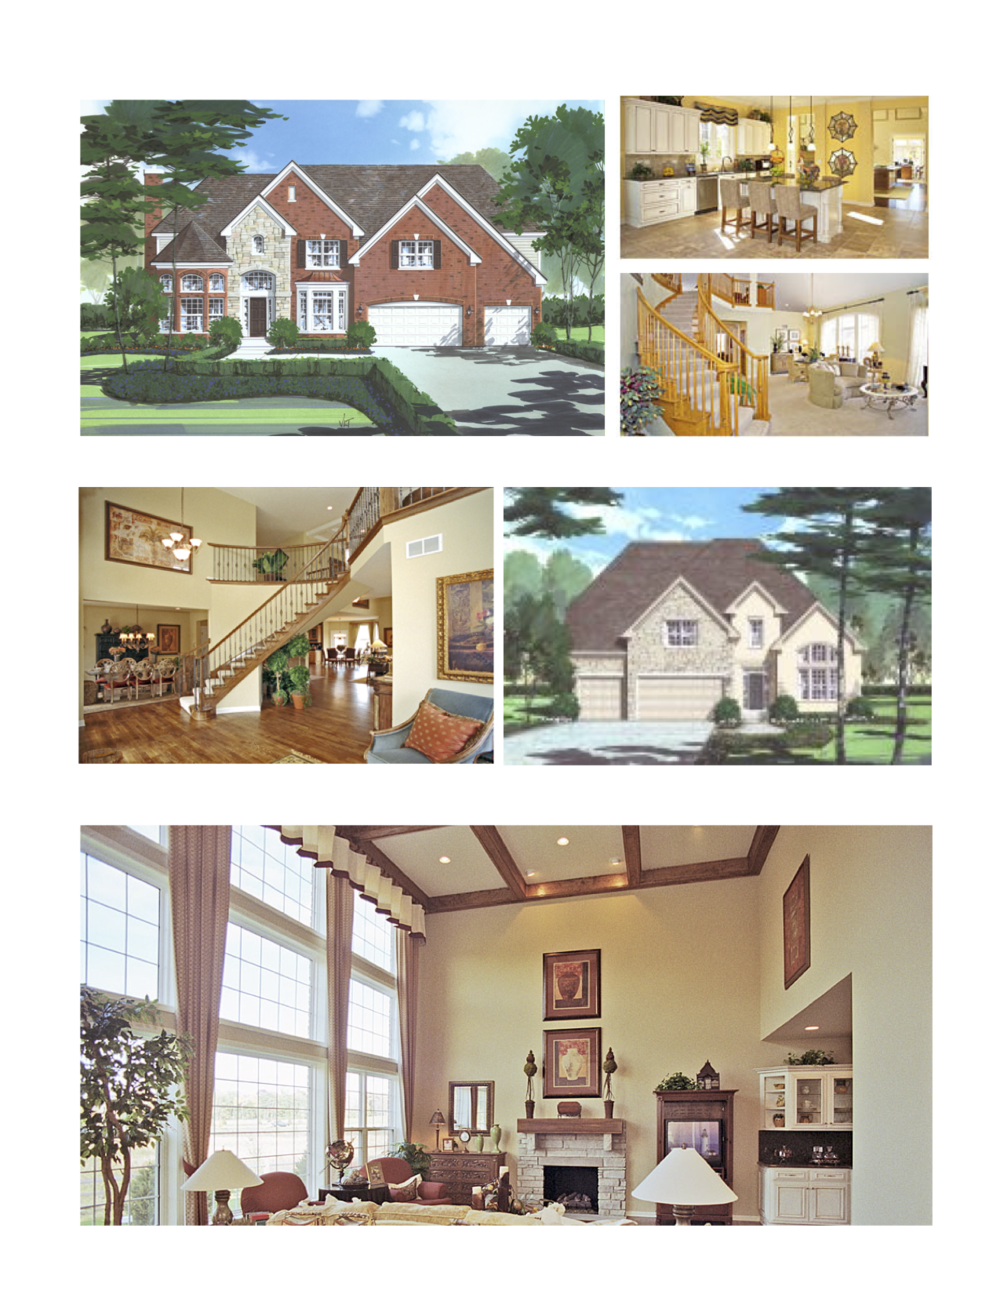 Dartmoor_Pics_and_Quality_of_Current_Palatine_Homes_and_Oak_Brook_Home.png